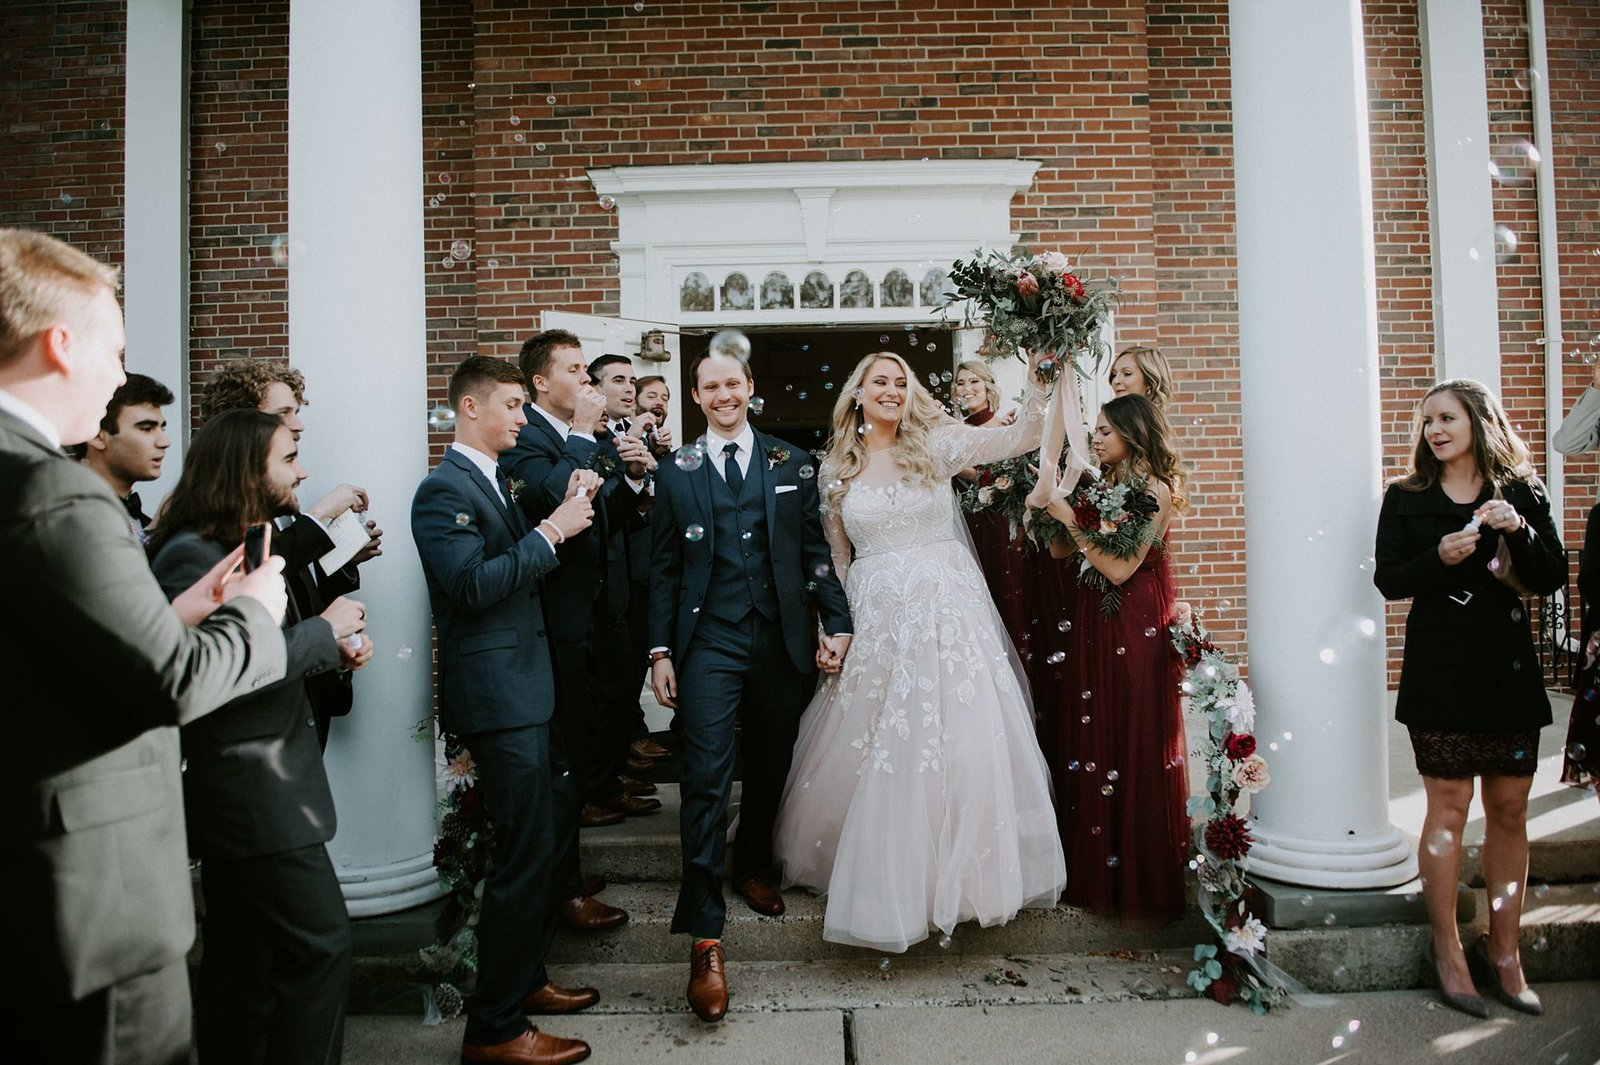 Rustic & Romantic fall wedding at The Webb Barn in Wethersfield, CT